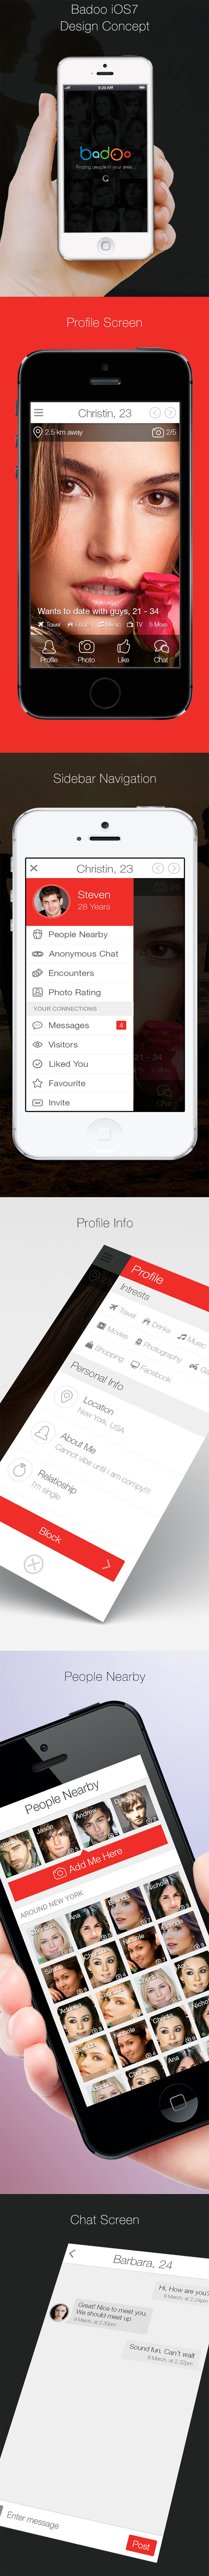 Amazing Mobile App UI Designs with Ultimate User Experience - 55